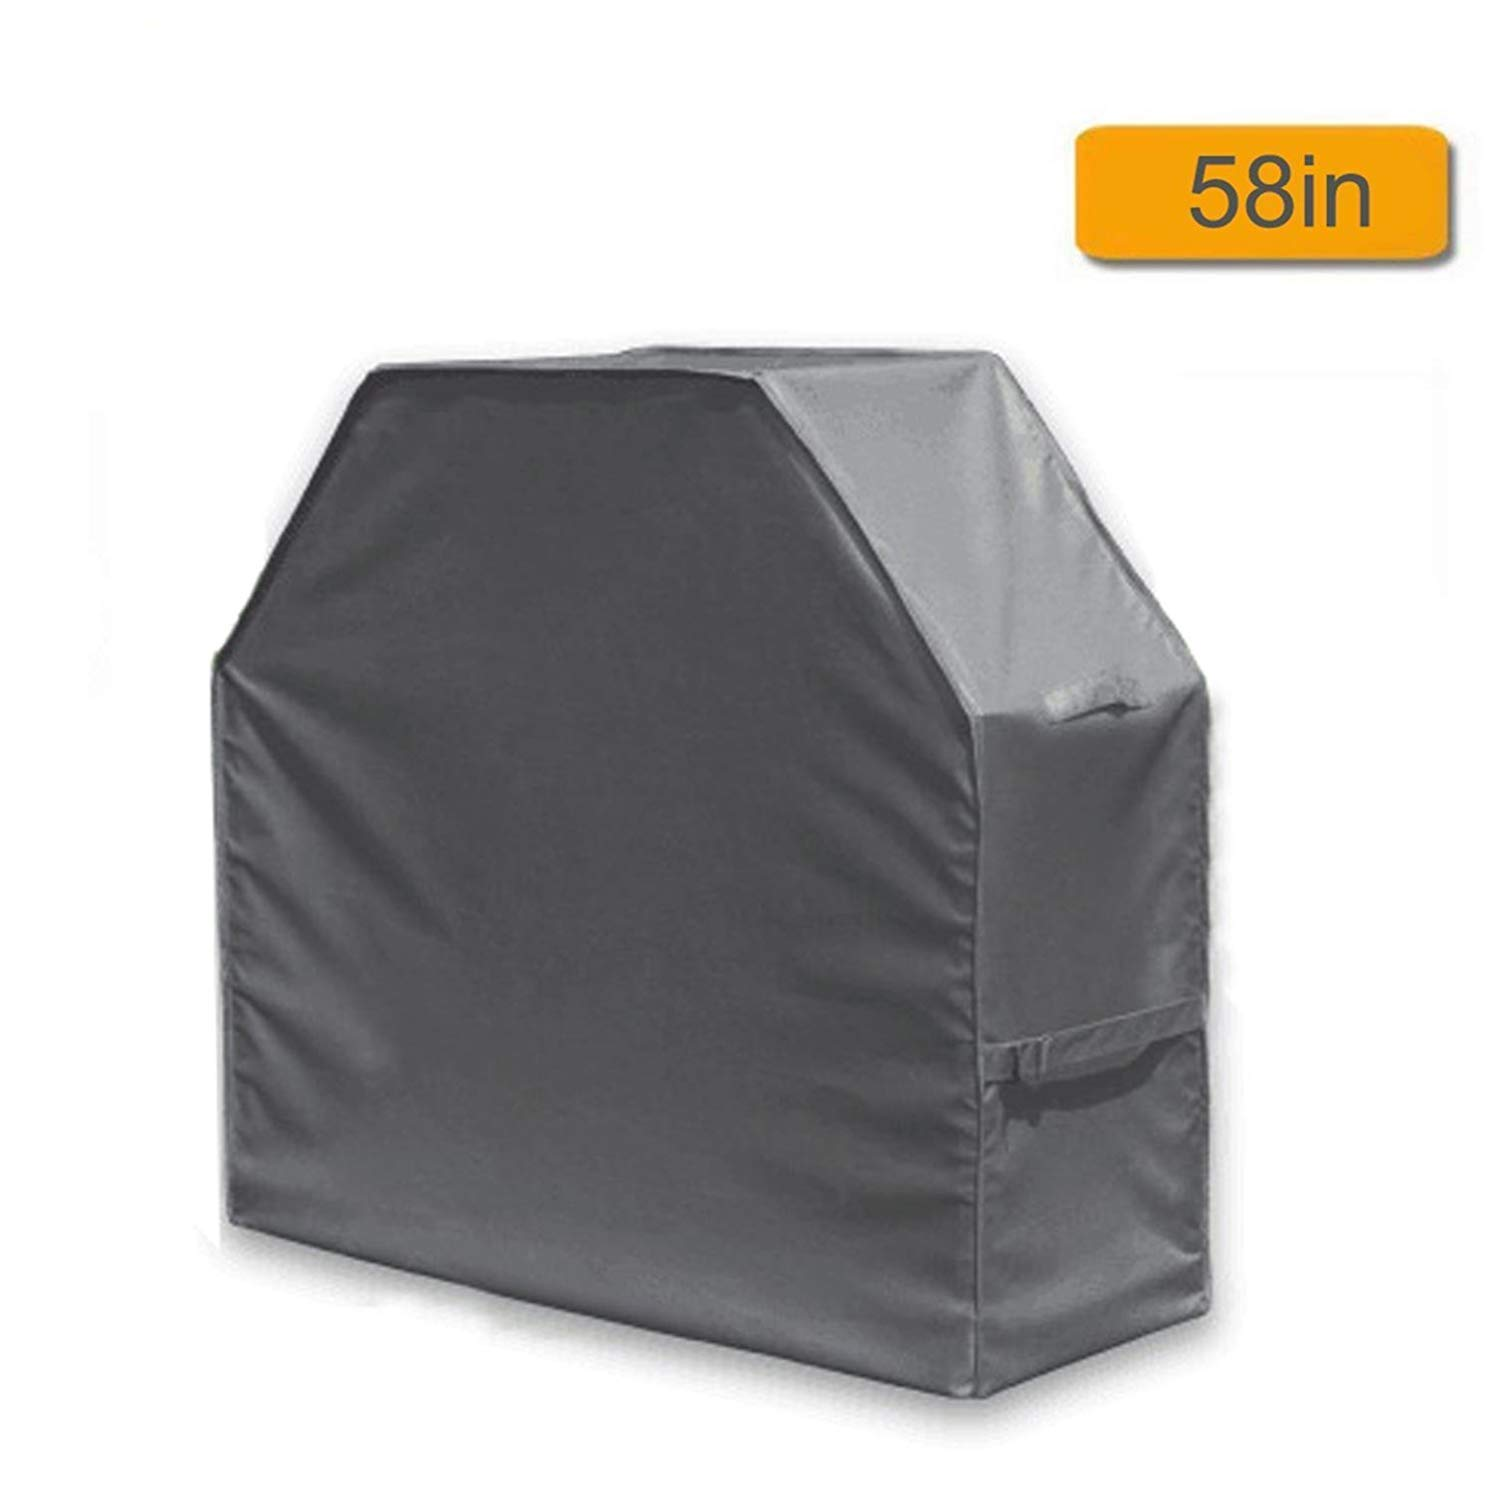 Grill Cover Brinkmann Char Broil JennAir 210D Oxford Fabric Barbecue Covers Anti-UV Rip-resistant Waterproof Gas BBQ Cover Prefect for Weber L:57 W: 24 H:46